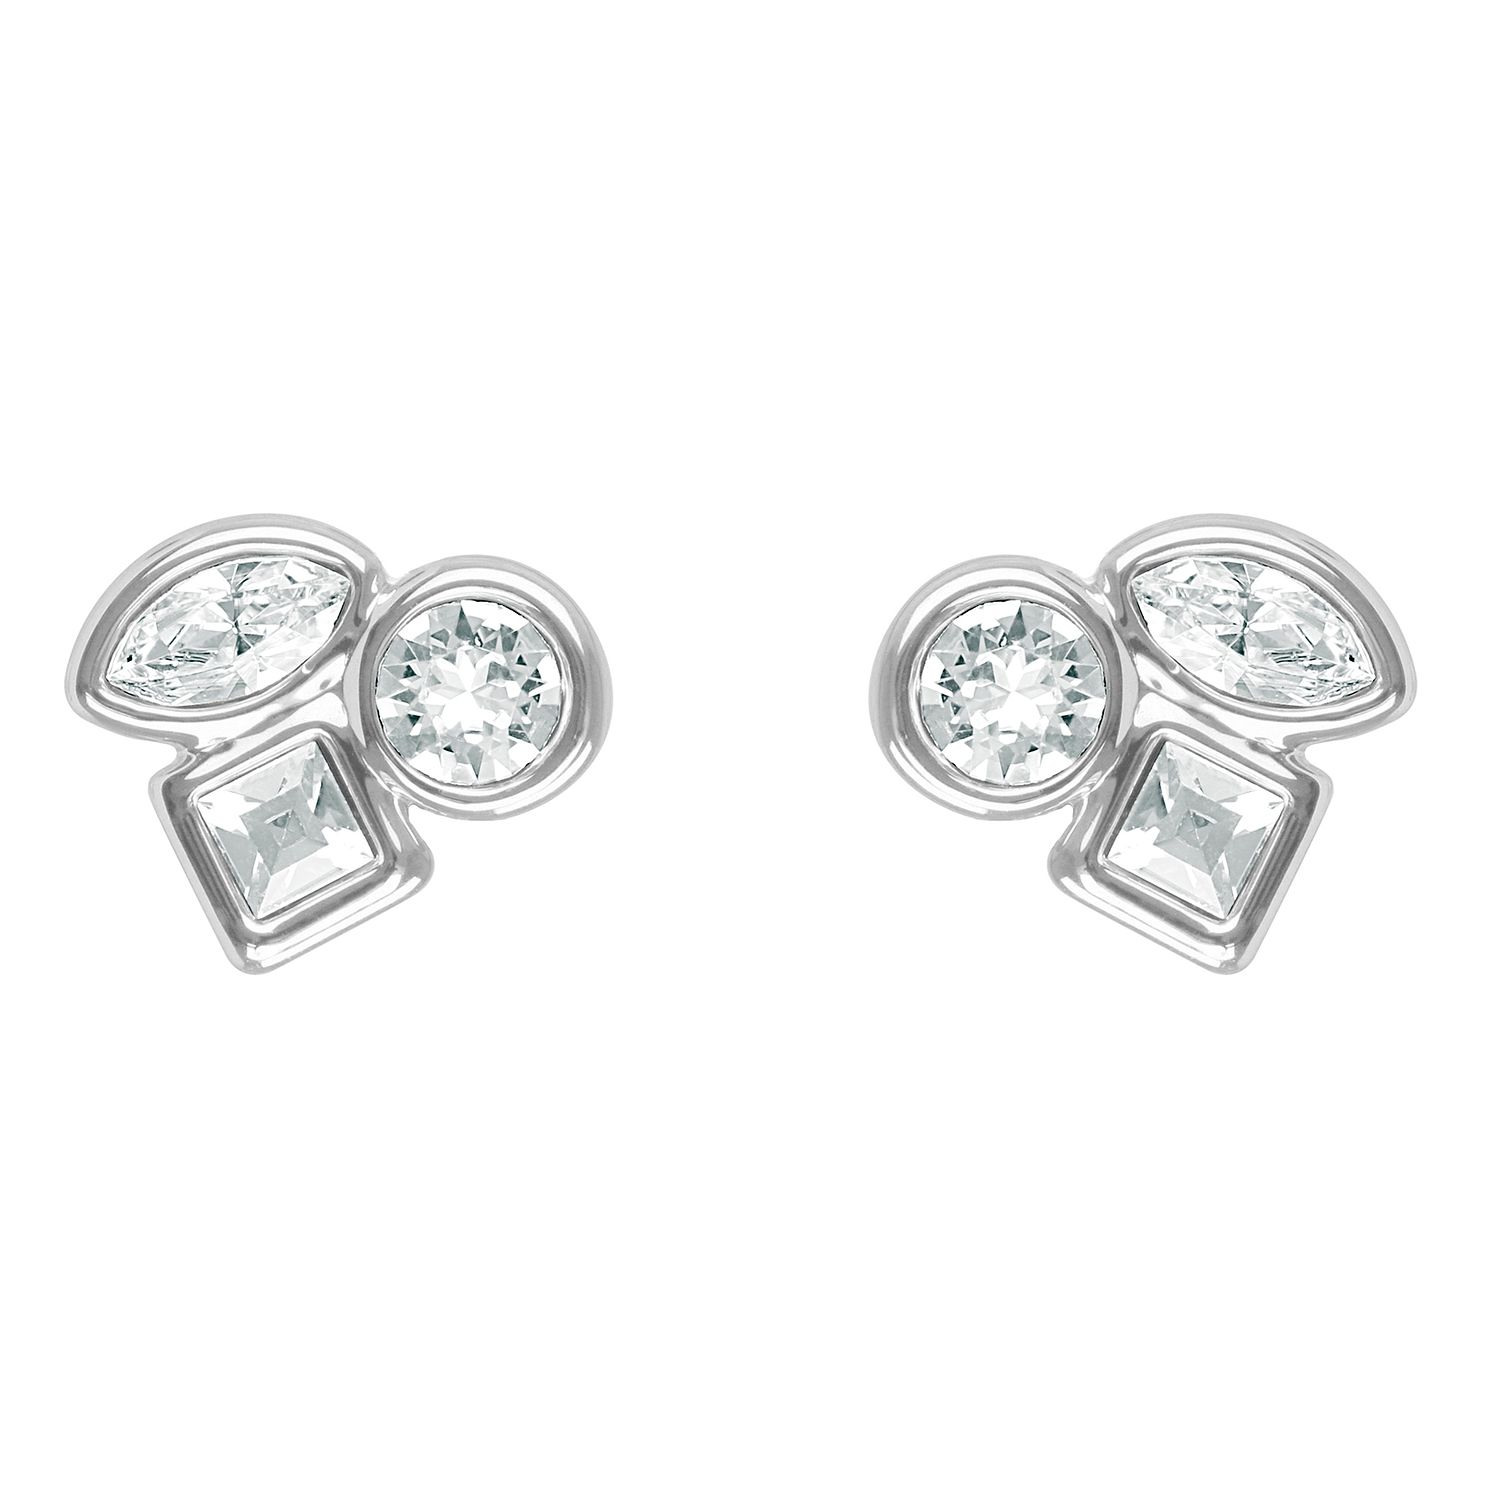 Adore Mini Crystal Rhodium Plated Swarovski Stud Earrings - Product number 4475402